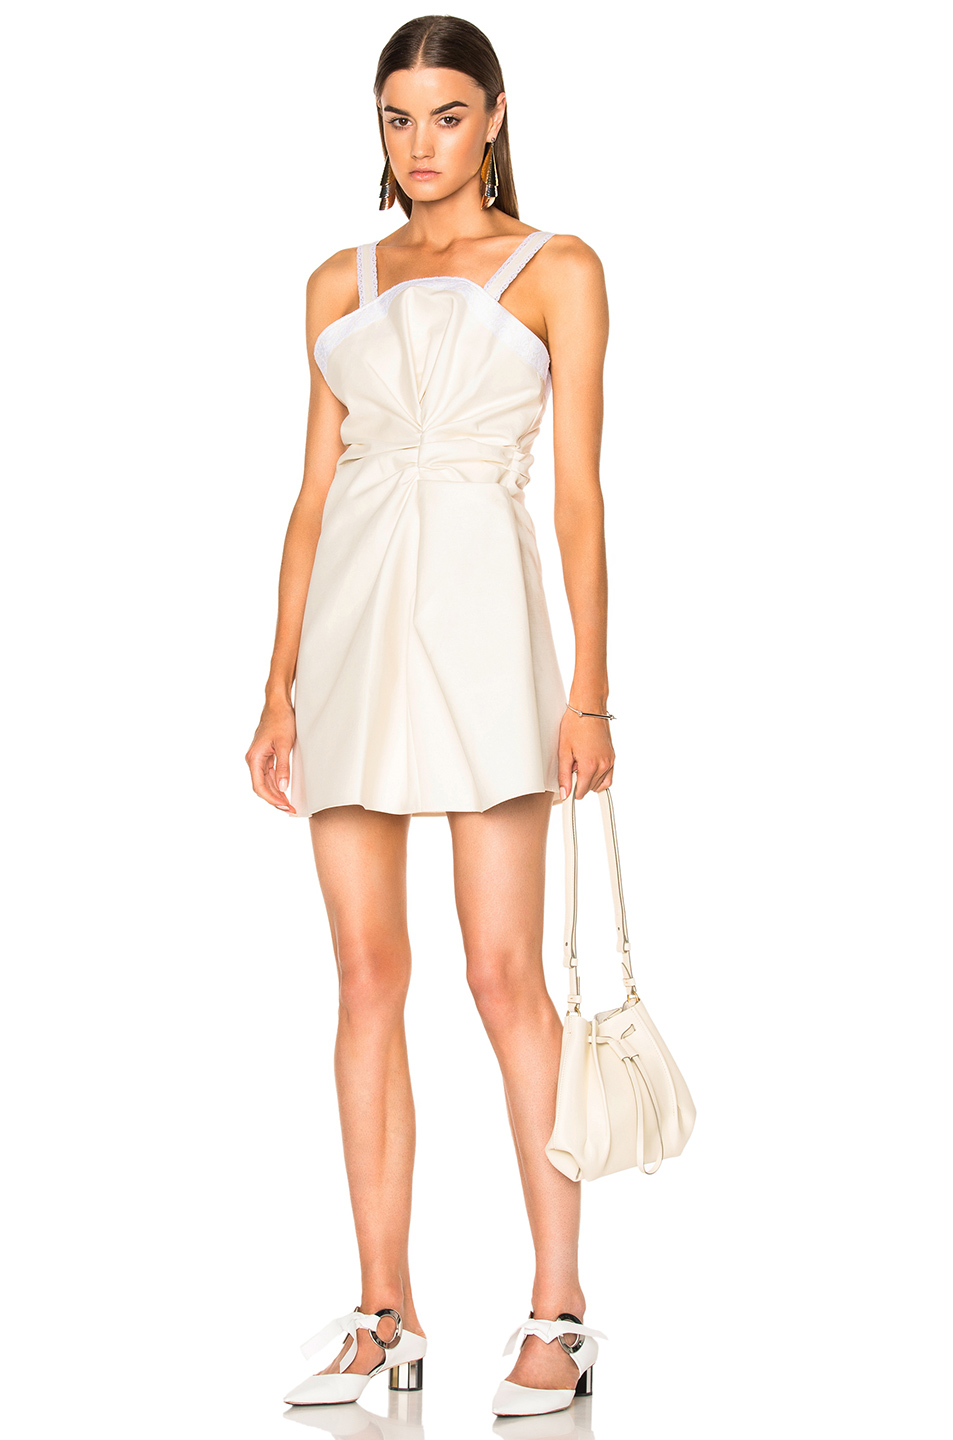 JACQUEMUS Sleeveless Dress in Neutrals,White